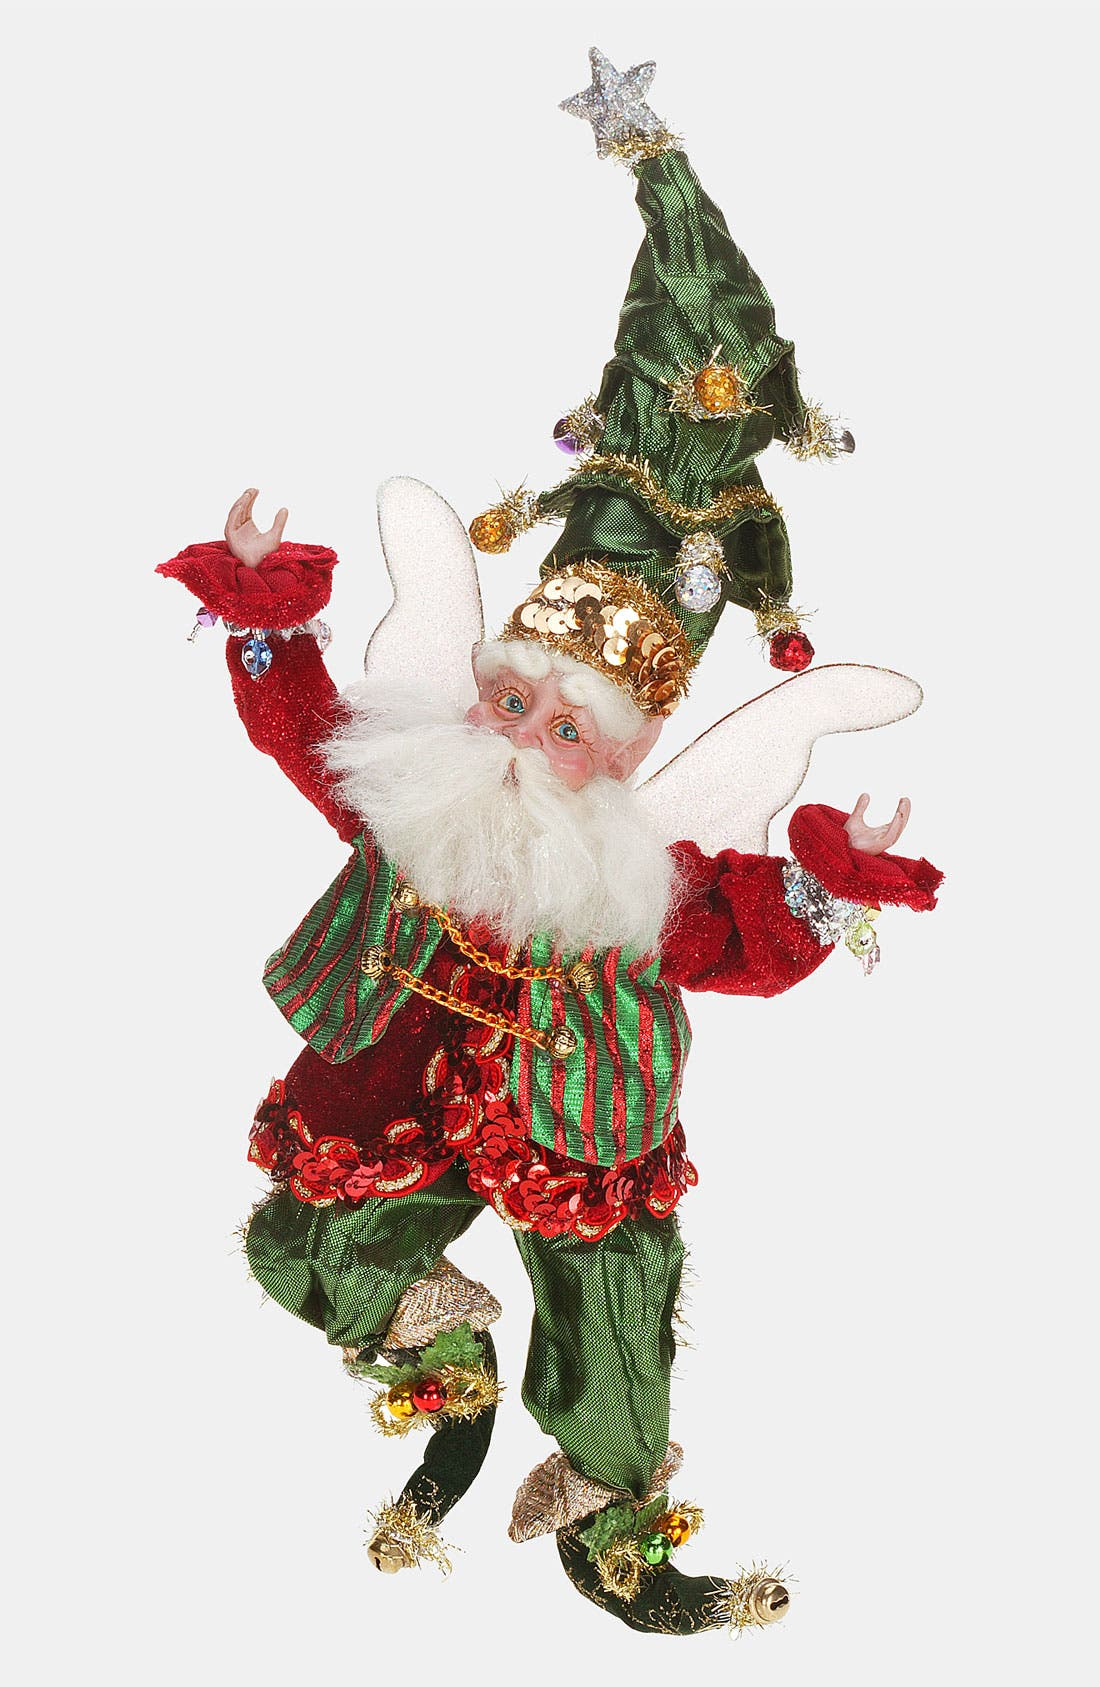 Alternate Image 1 Selected - Mark Roberts 'Christmas Tree Fairy' Figurine (Limited Edition)